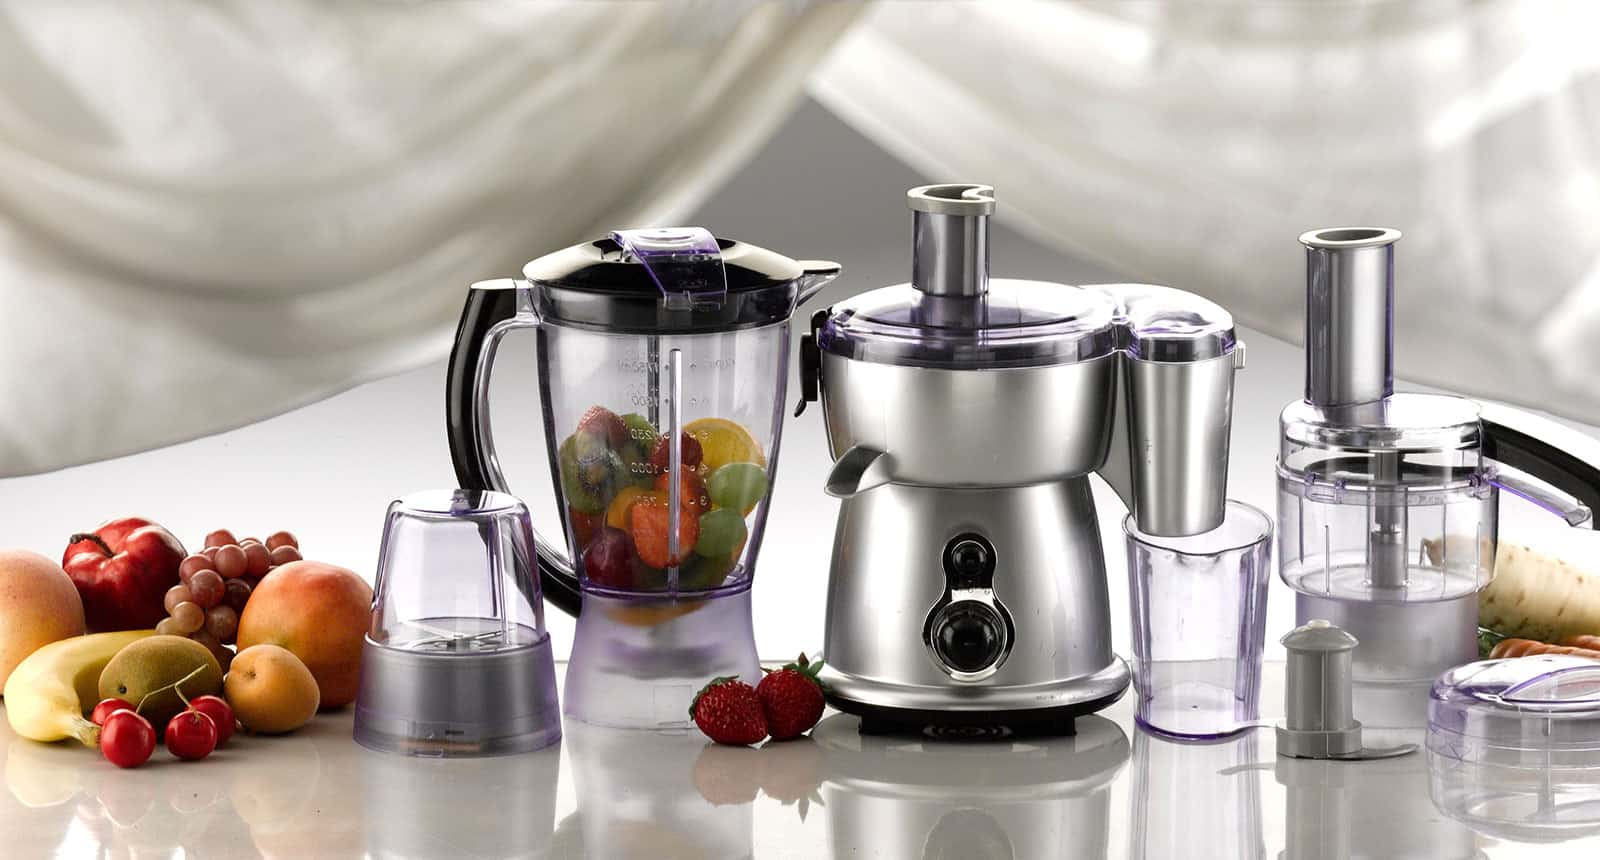 Food Processor and Fruits